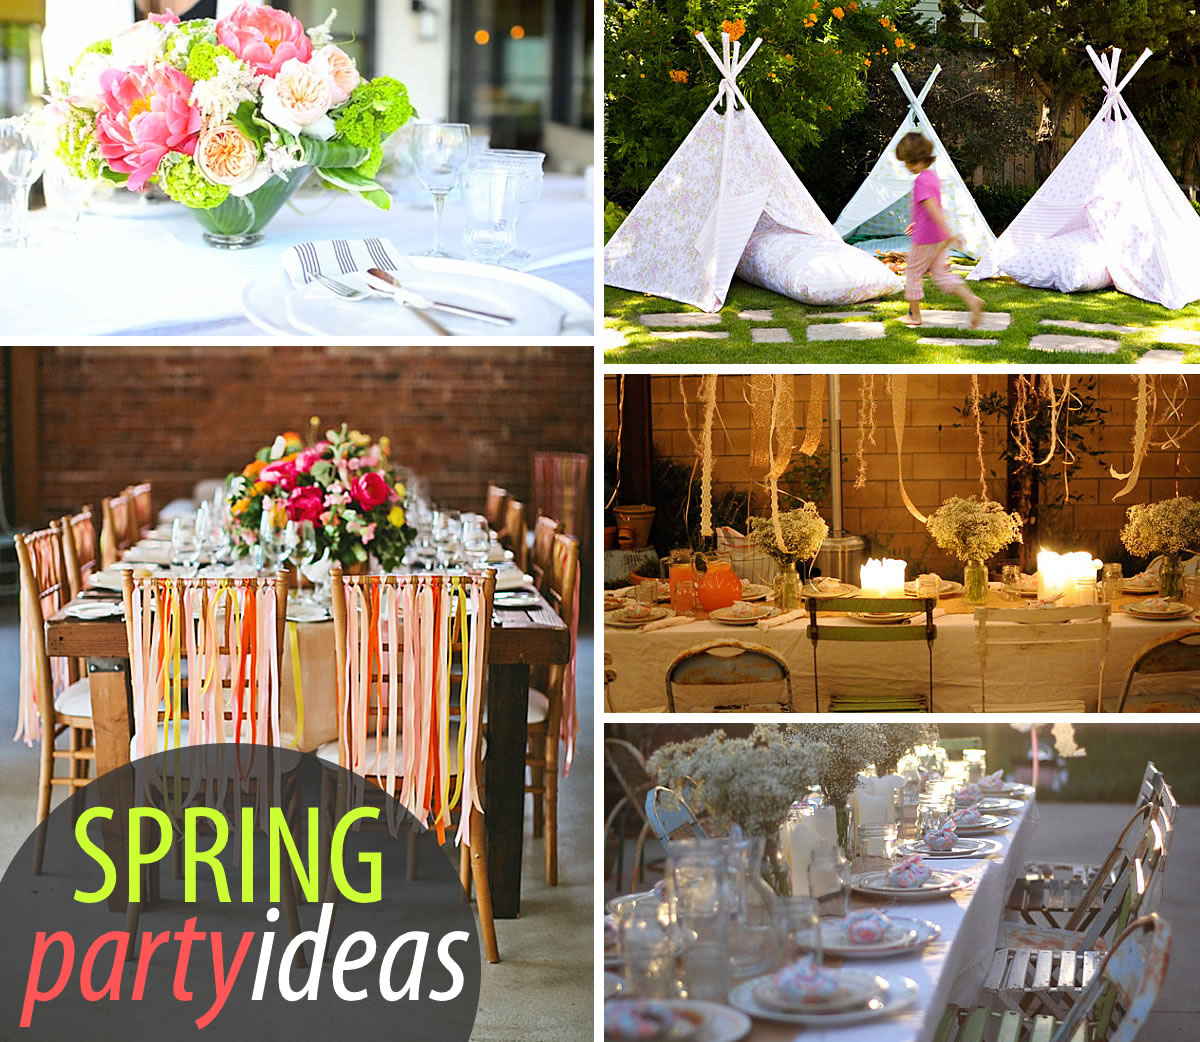 20 colorful spring party ideas - Spring Party Decorating Ideas